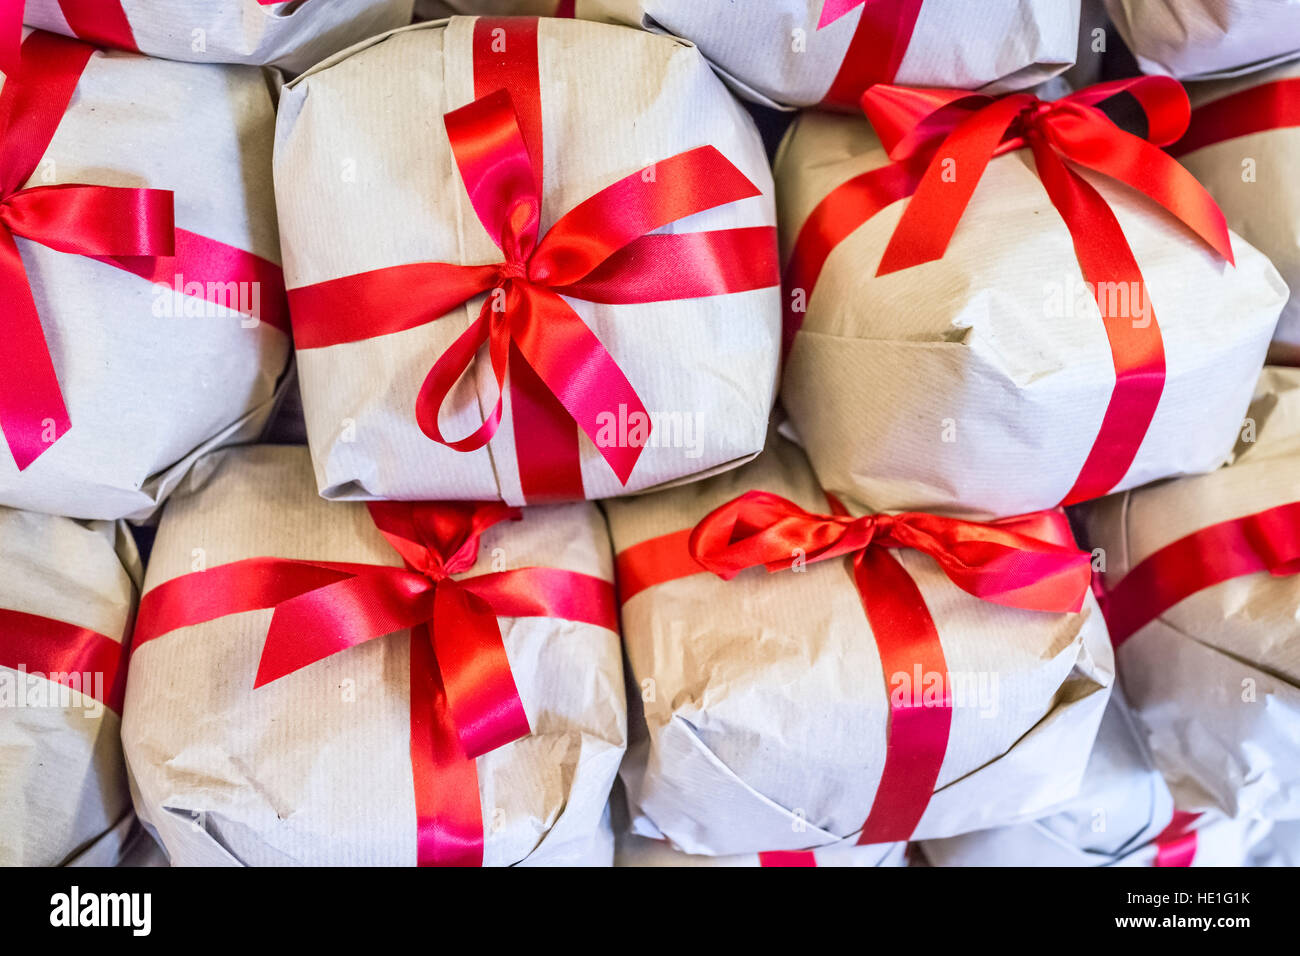 Stack of gift wrapped boxes in red ribbon and brown paper stock stack of gift wrapped boxes in red ribbon and brown paper negle Images